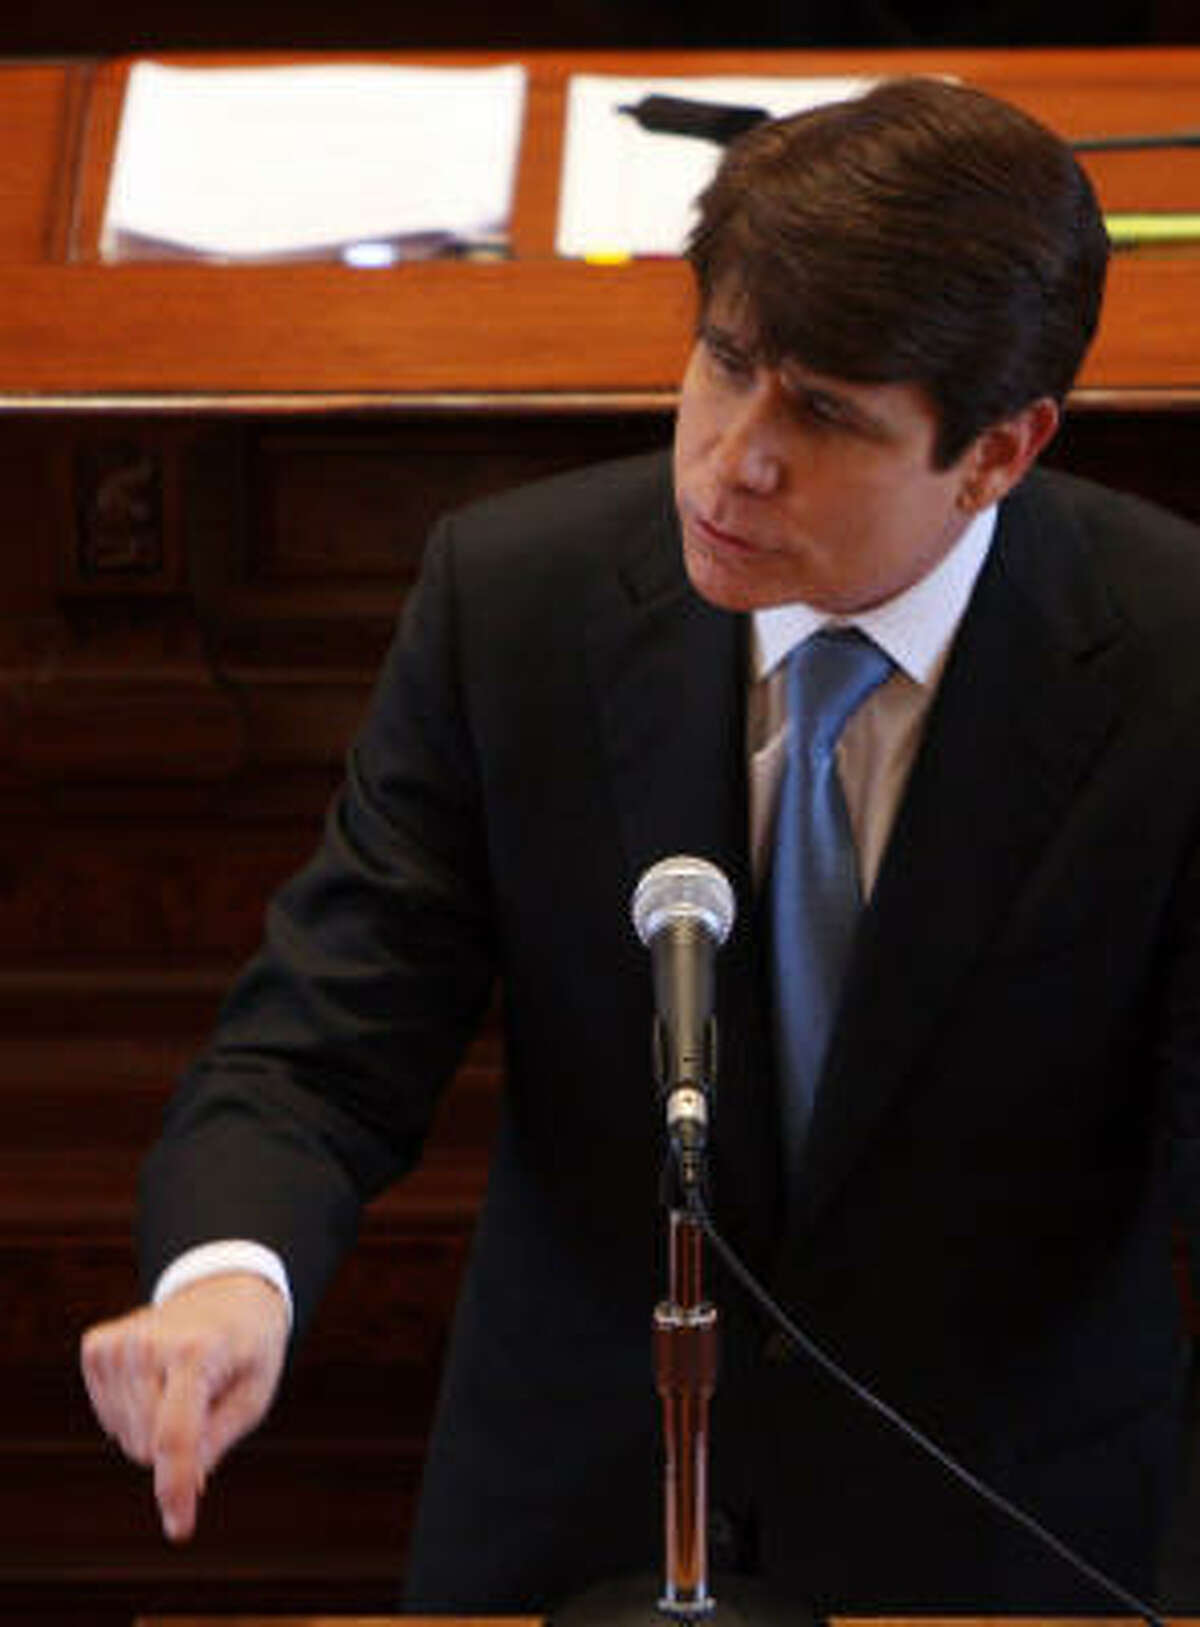 Illinois Gov. Rod Blagojevich addresses the Illinois Senate during his impeachment trial on Thursday in Springfield, Ill.